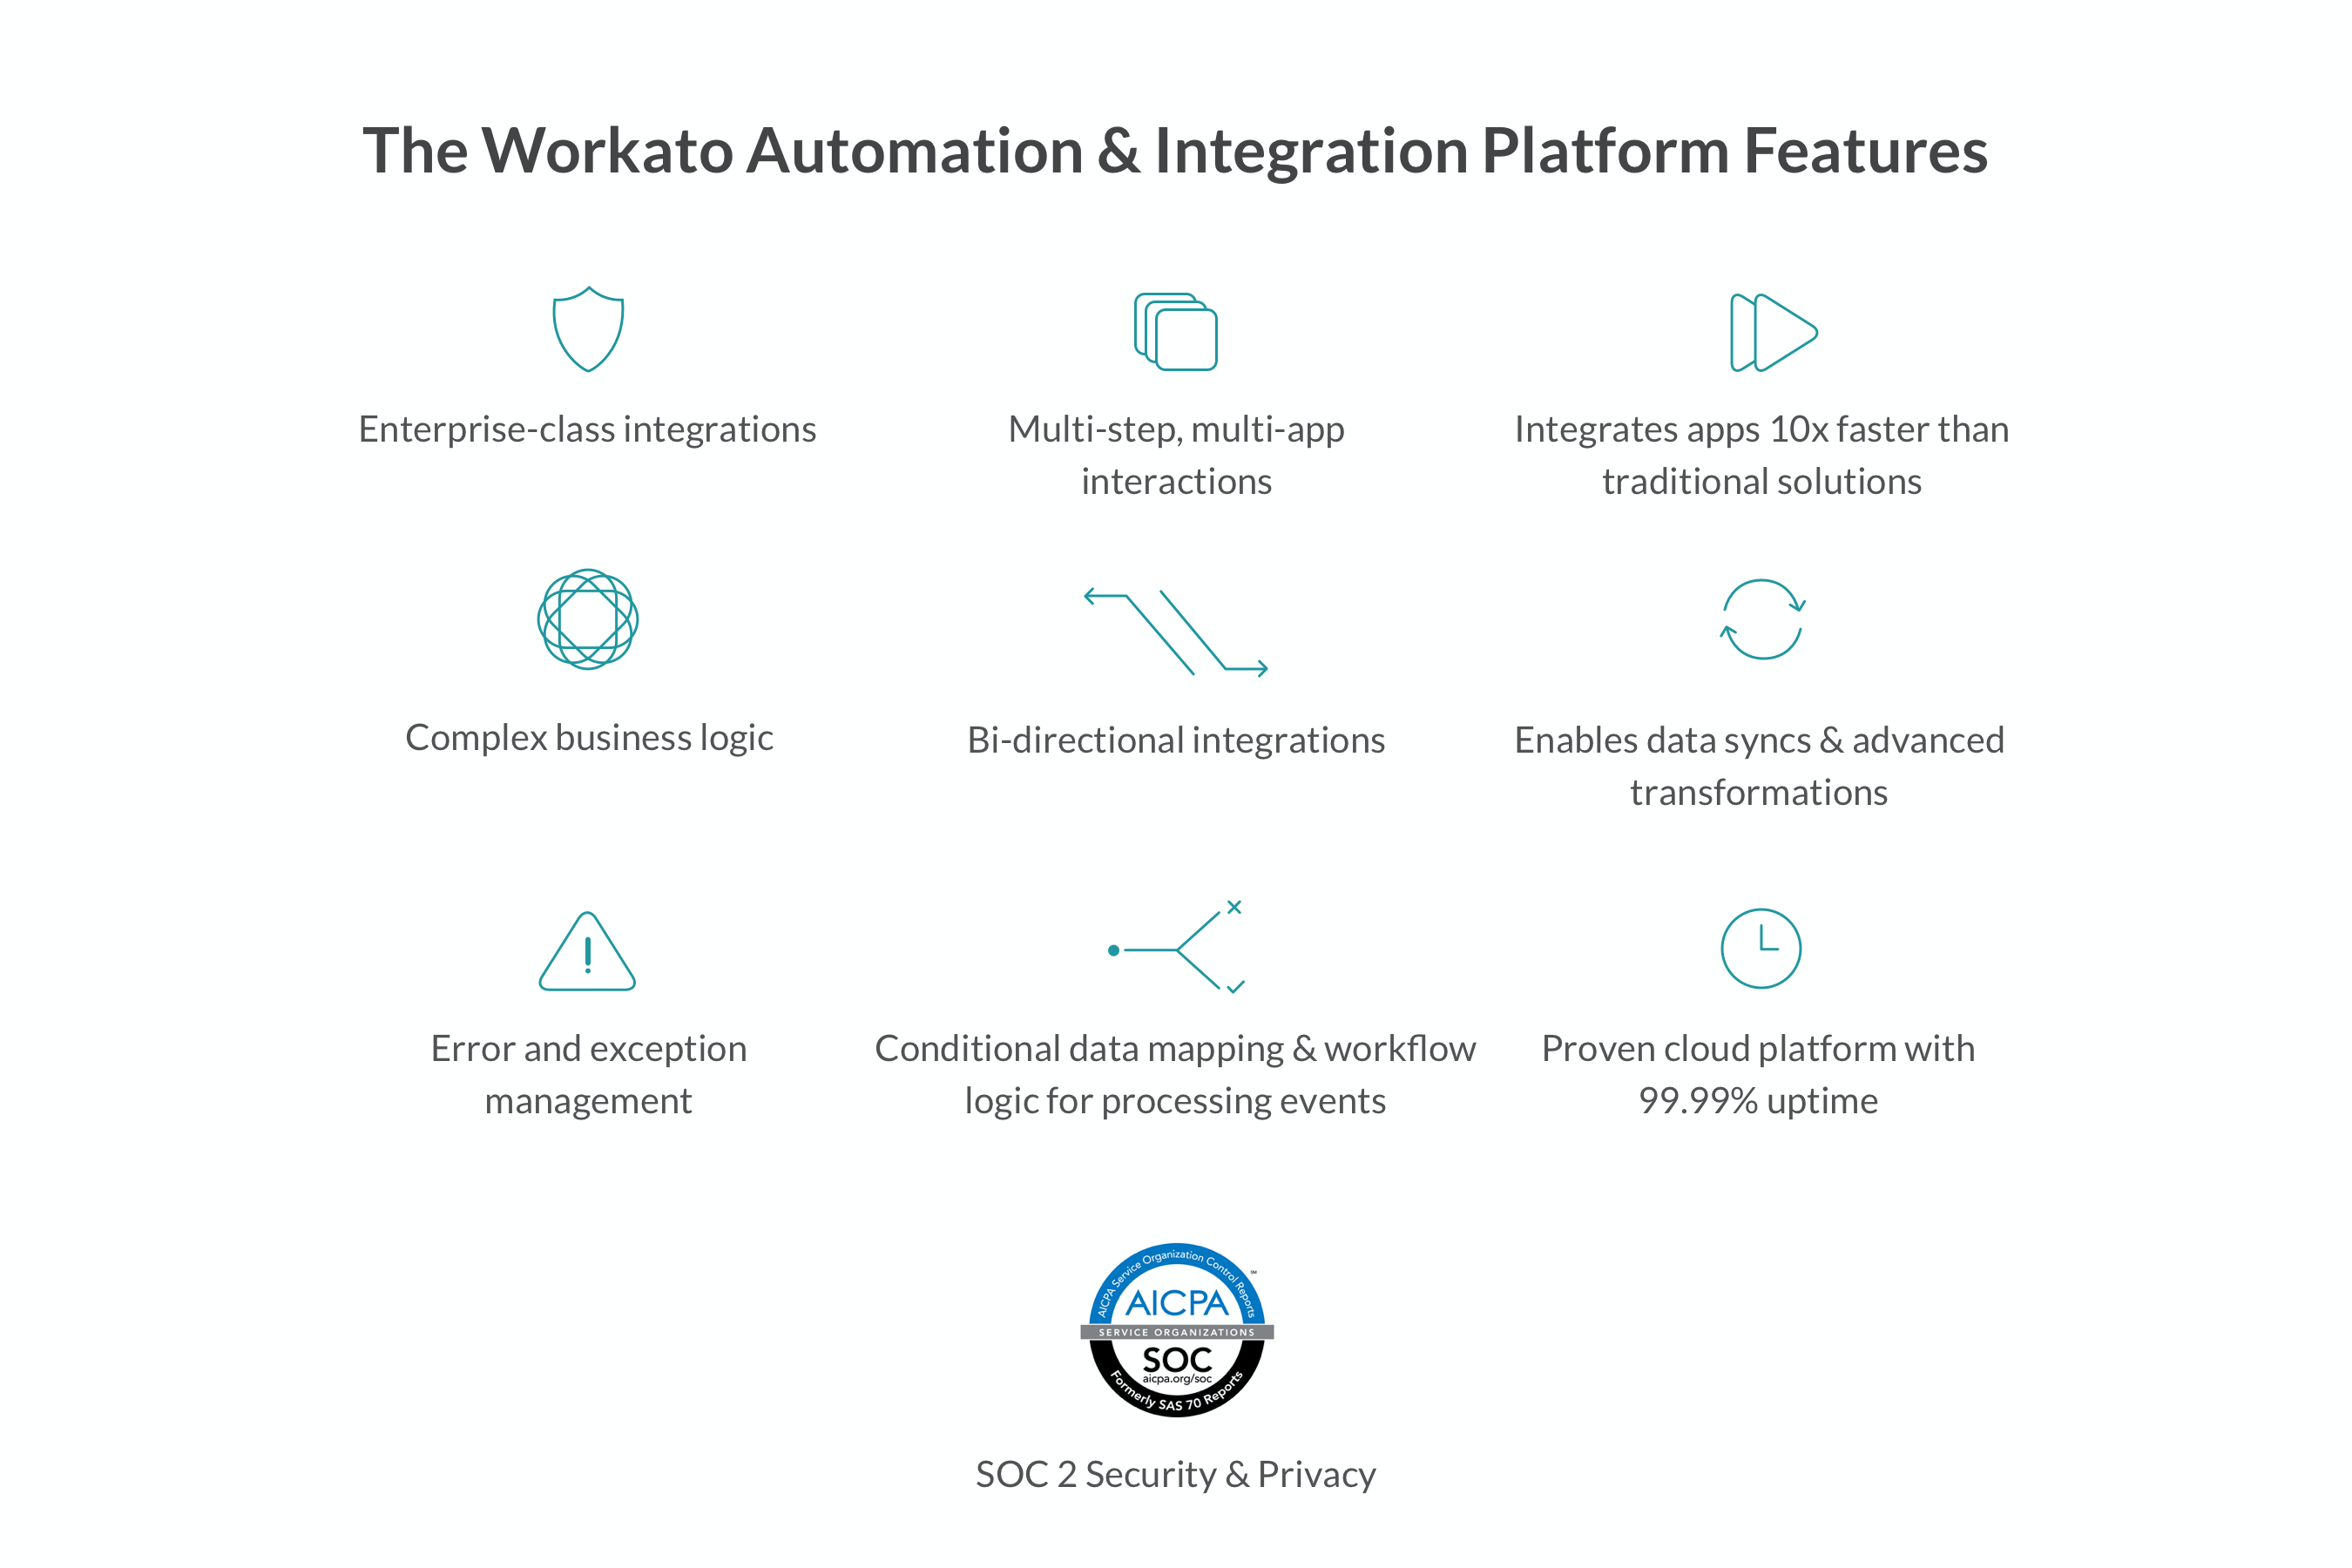 Workato Enterprise-Class Features